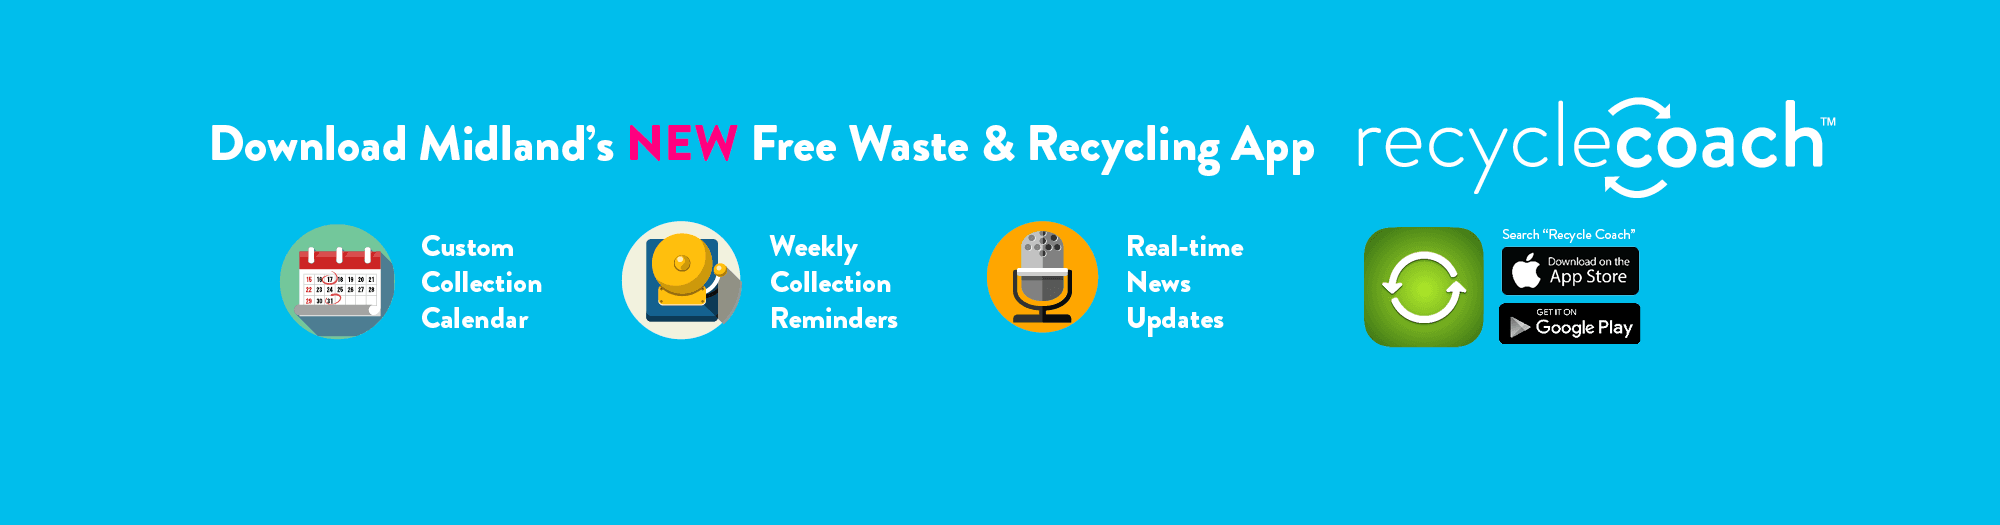 Download Midland's New free waste and recycling app